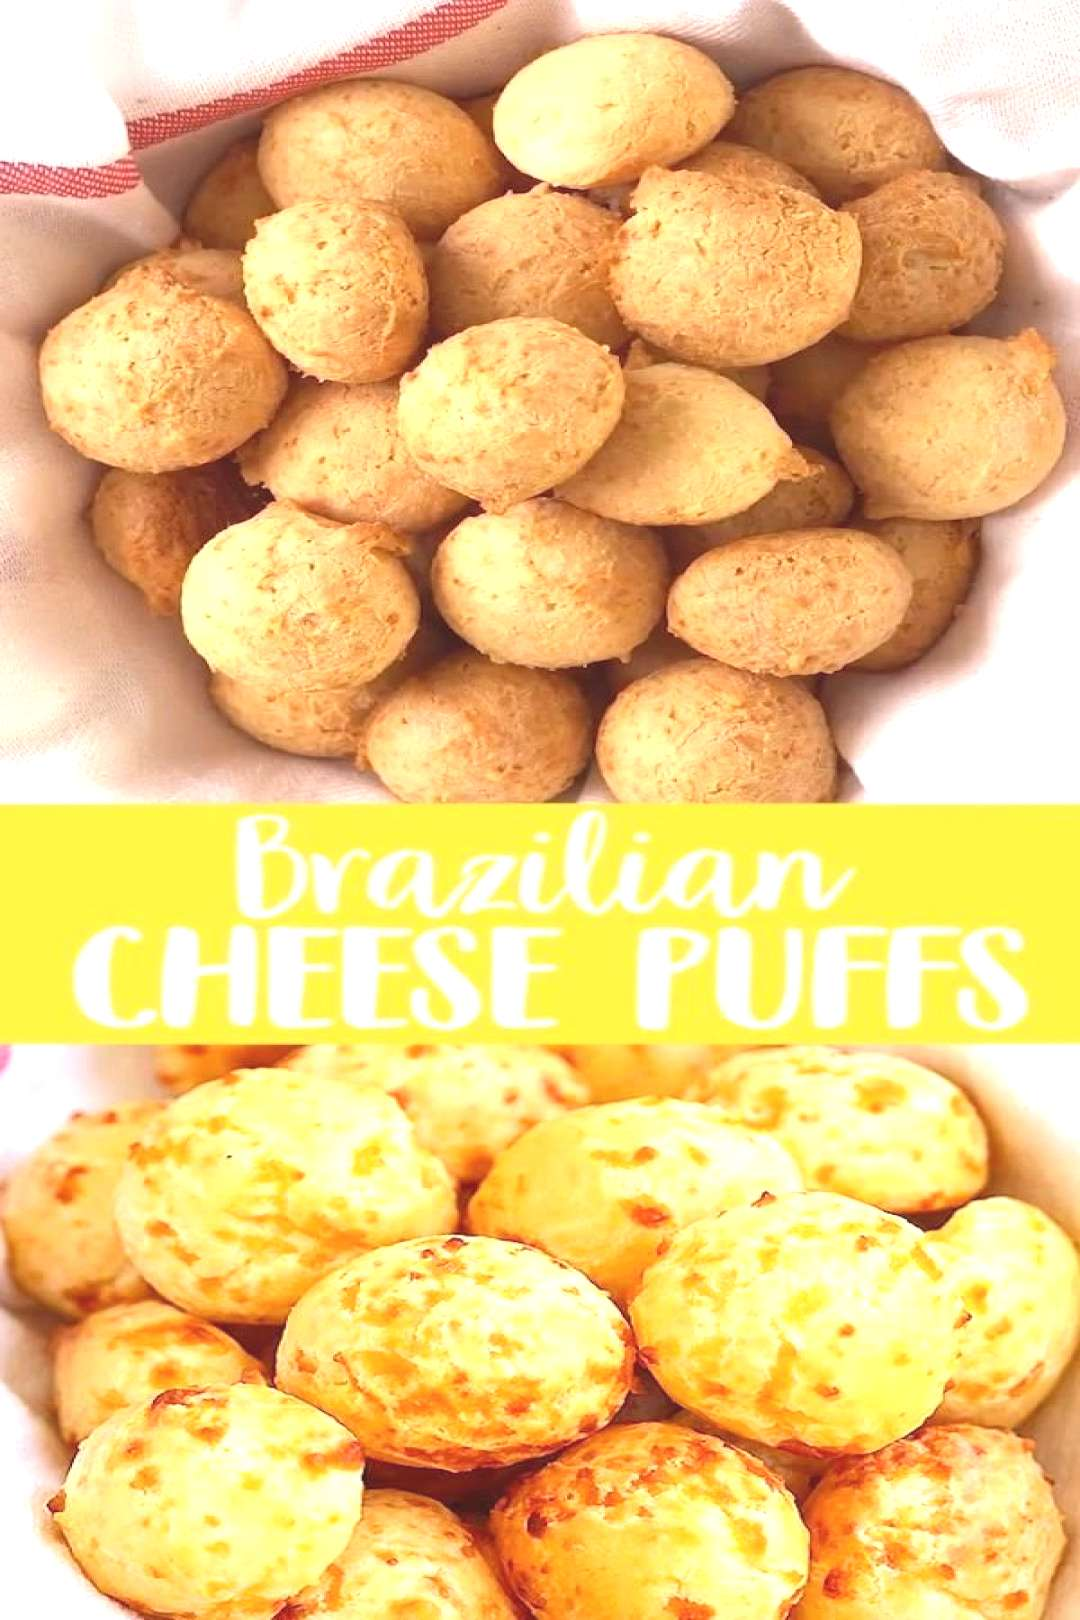 Cheese Puffs - fully loaded Pão de Queijo with Parmesan cheese. These cheese puffs are addictive a